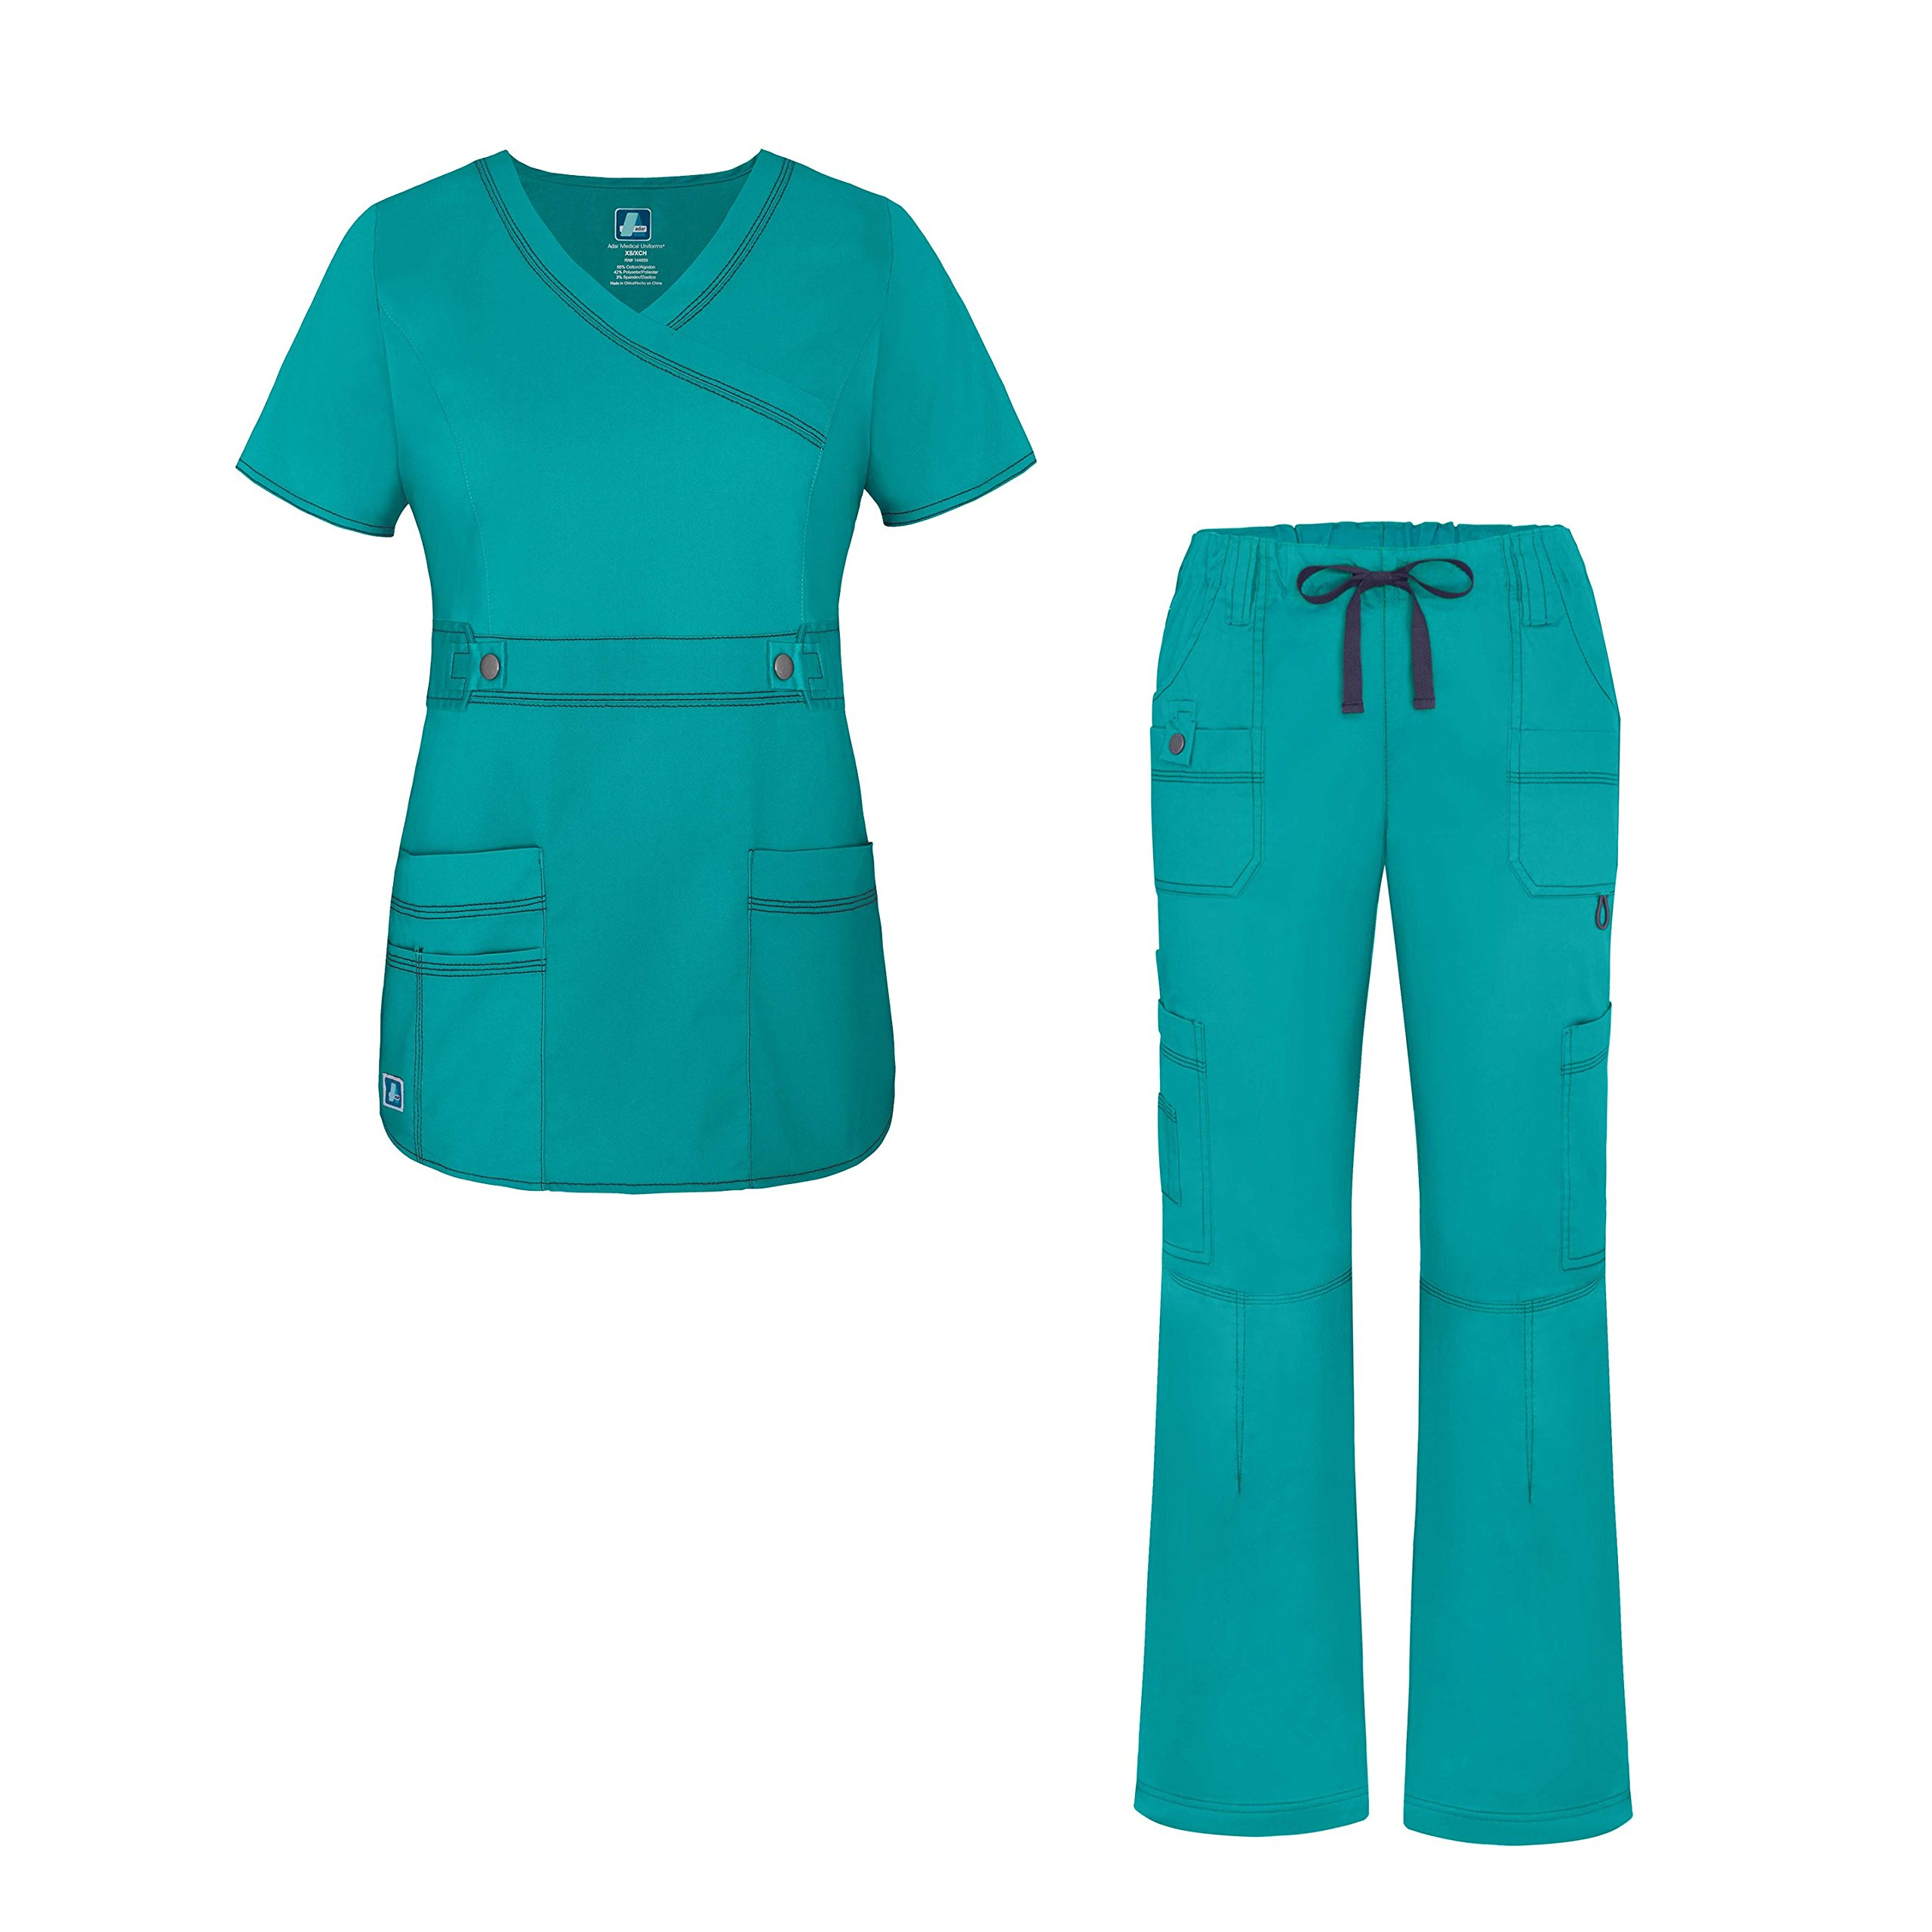 Adar Pop-Stretch Junior Fit Women's Scrub Set - Crossover Top and Multi Pocket Pants - 3500 - Teal Green - L